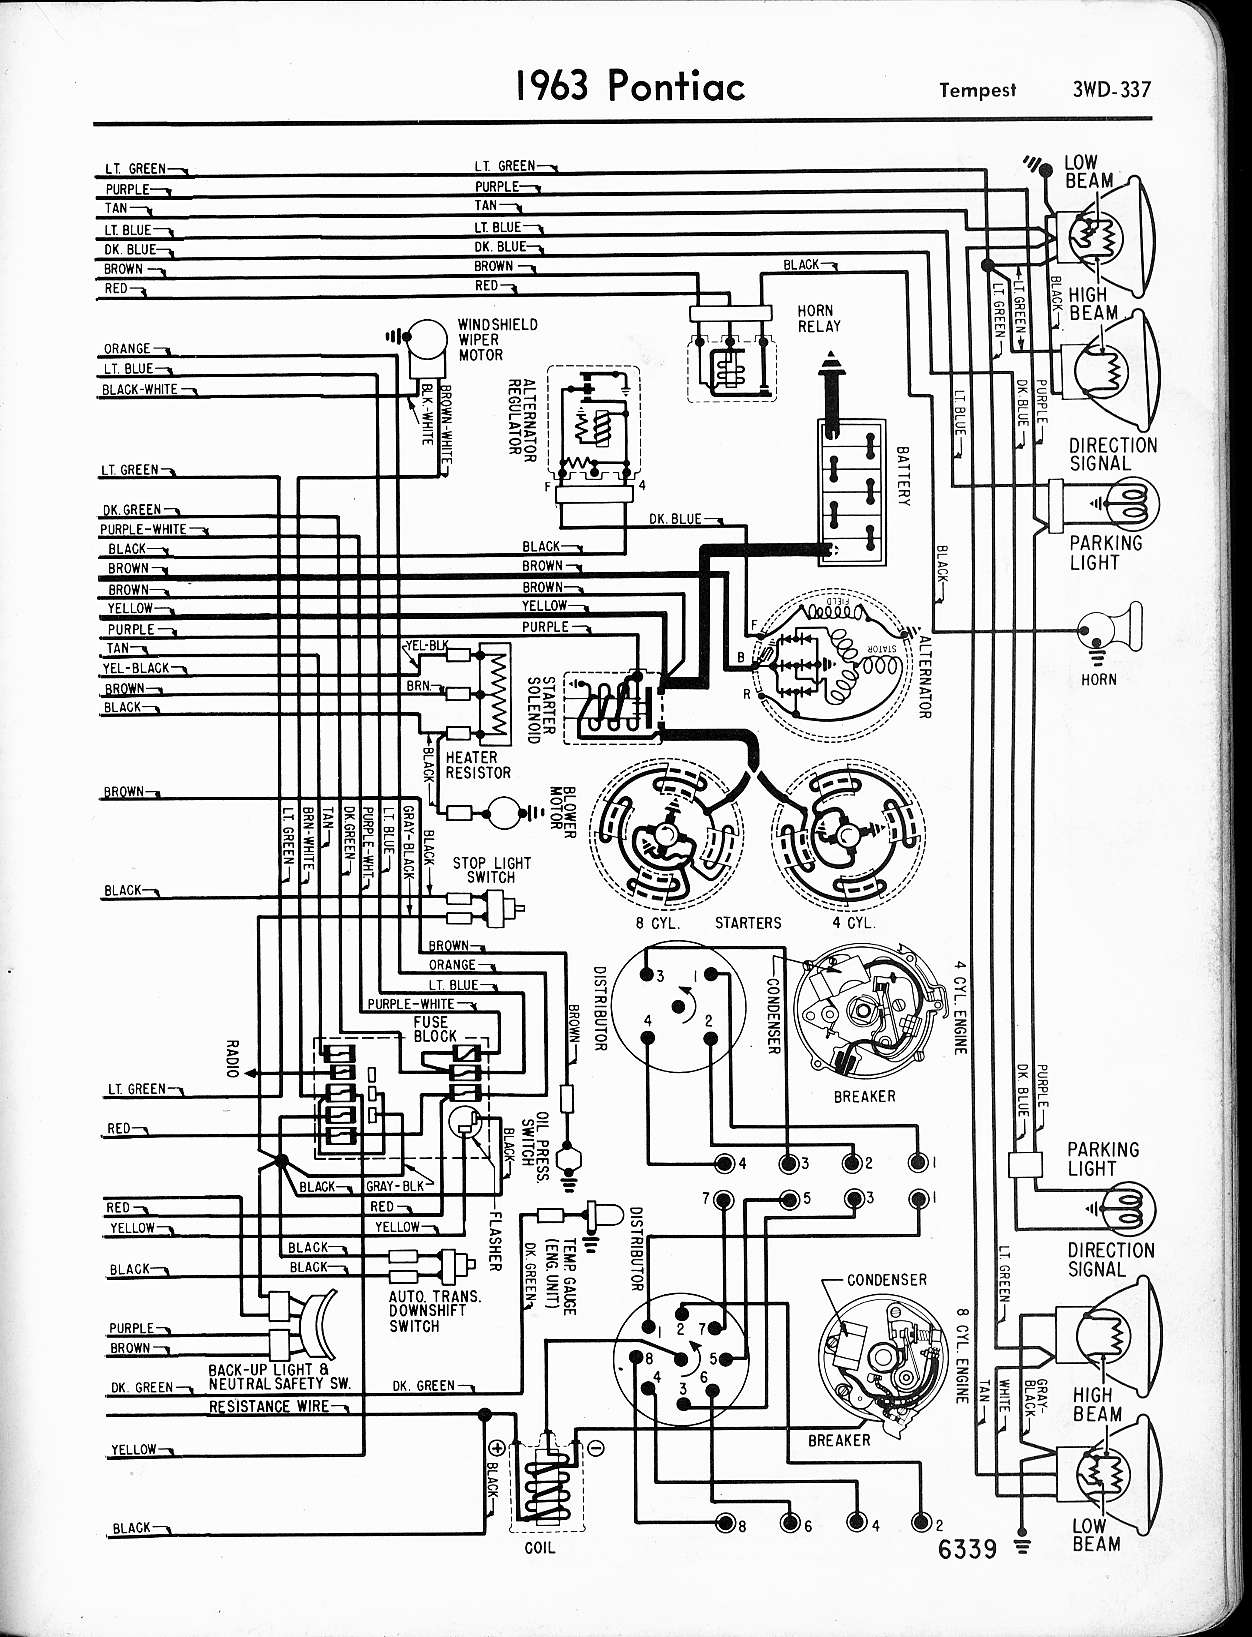 1970 Gto Tach Wiring Diagram | Wiring Diagram  Chevelle Dash Wiring Schematic on 1968 chevelle wiring schematic, 70 chevelle dash gauges, 70 chevelle dash speaker,